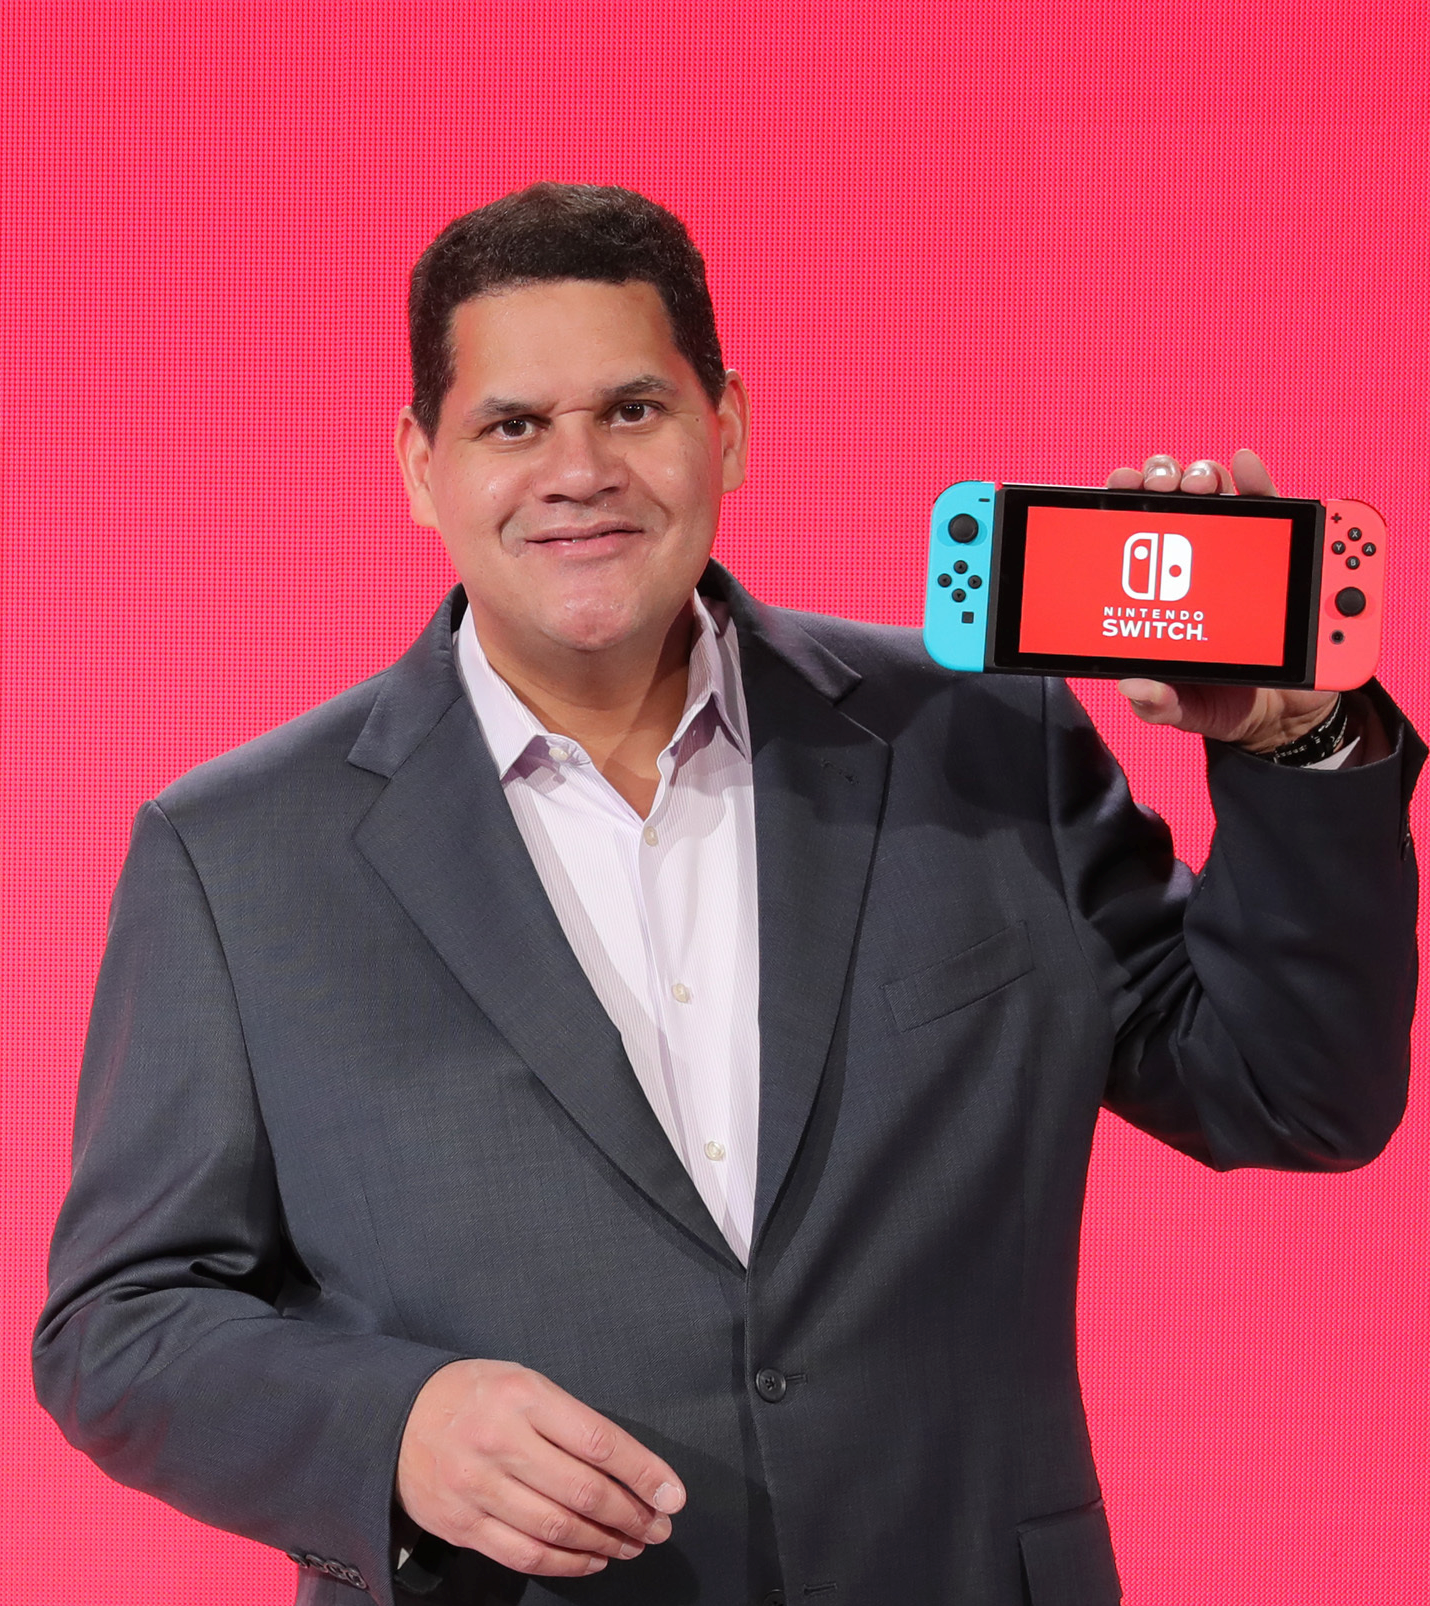 Nintendo thinks it will sell 10-20 million Switches